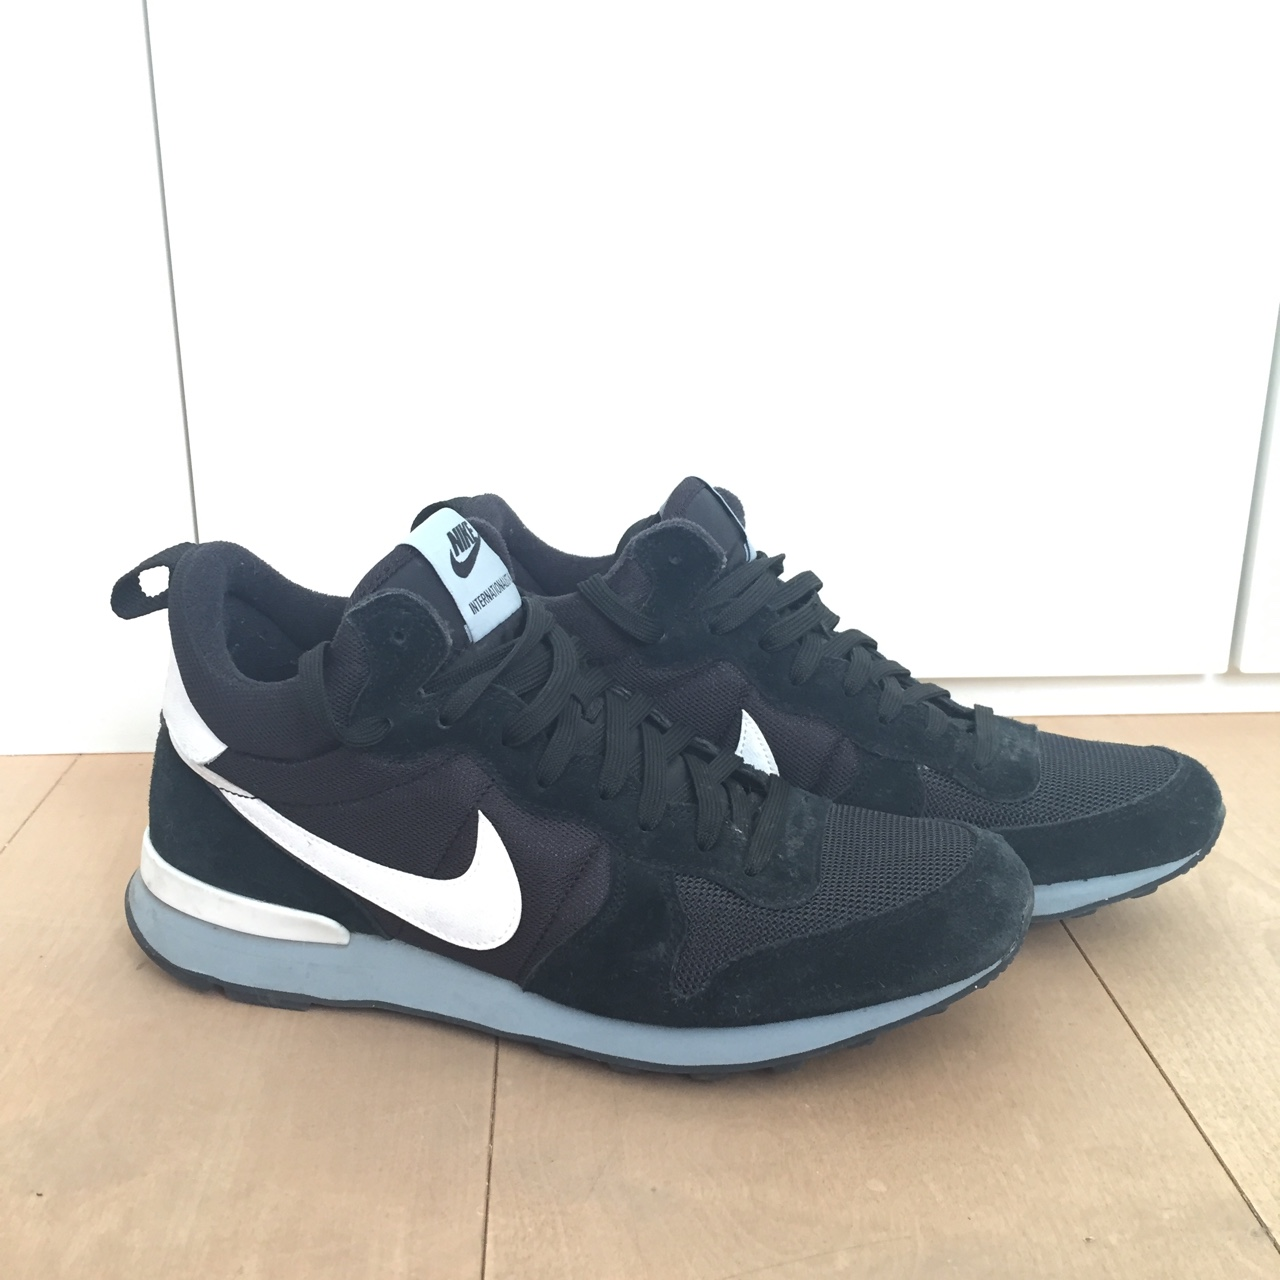 2nike internationalist nere